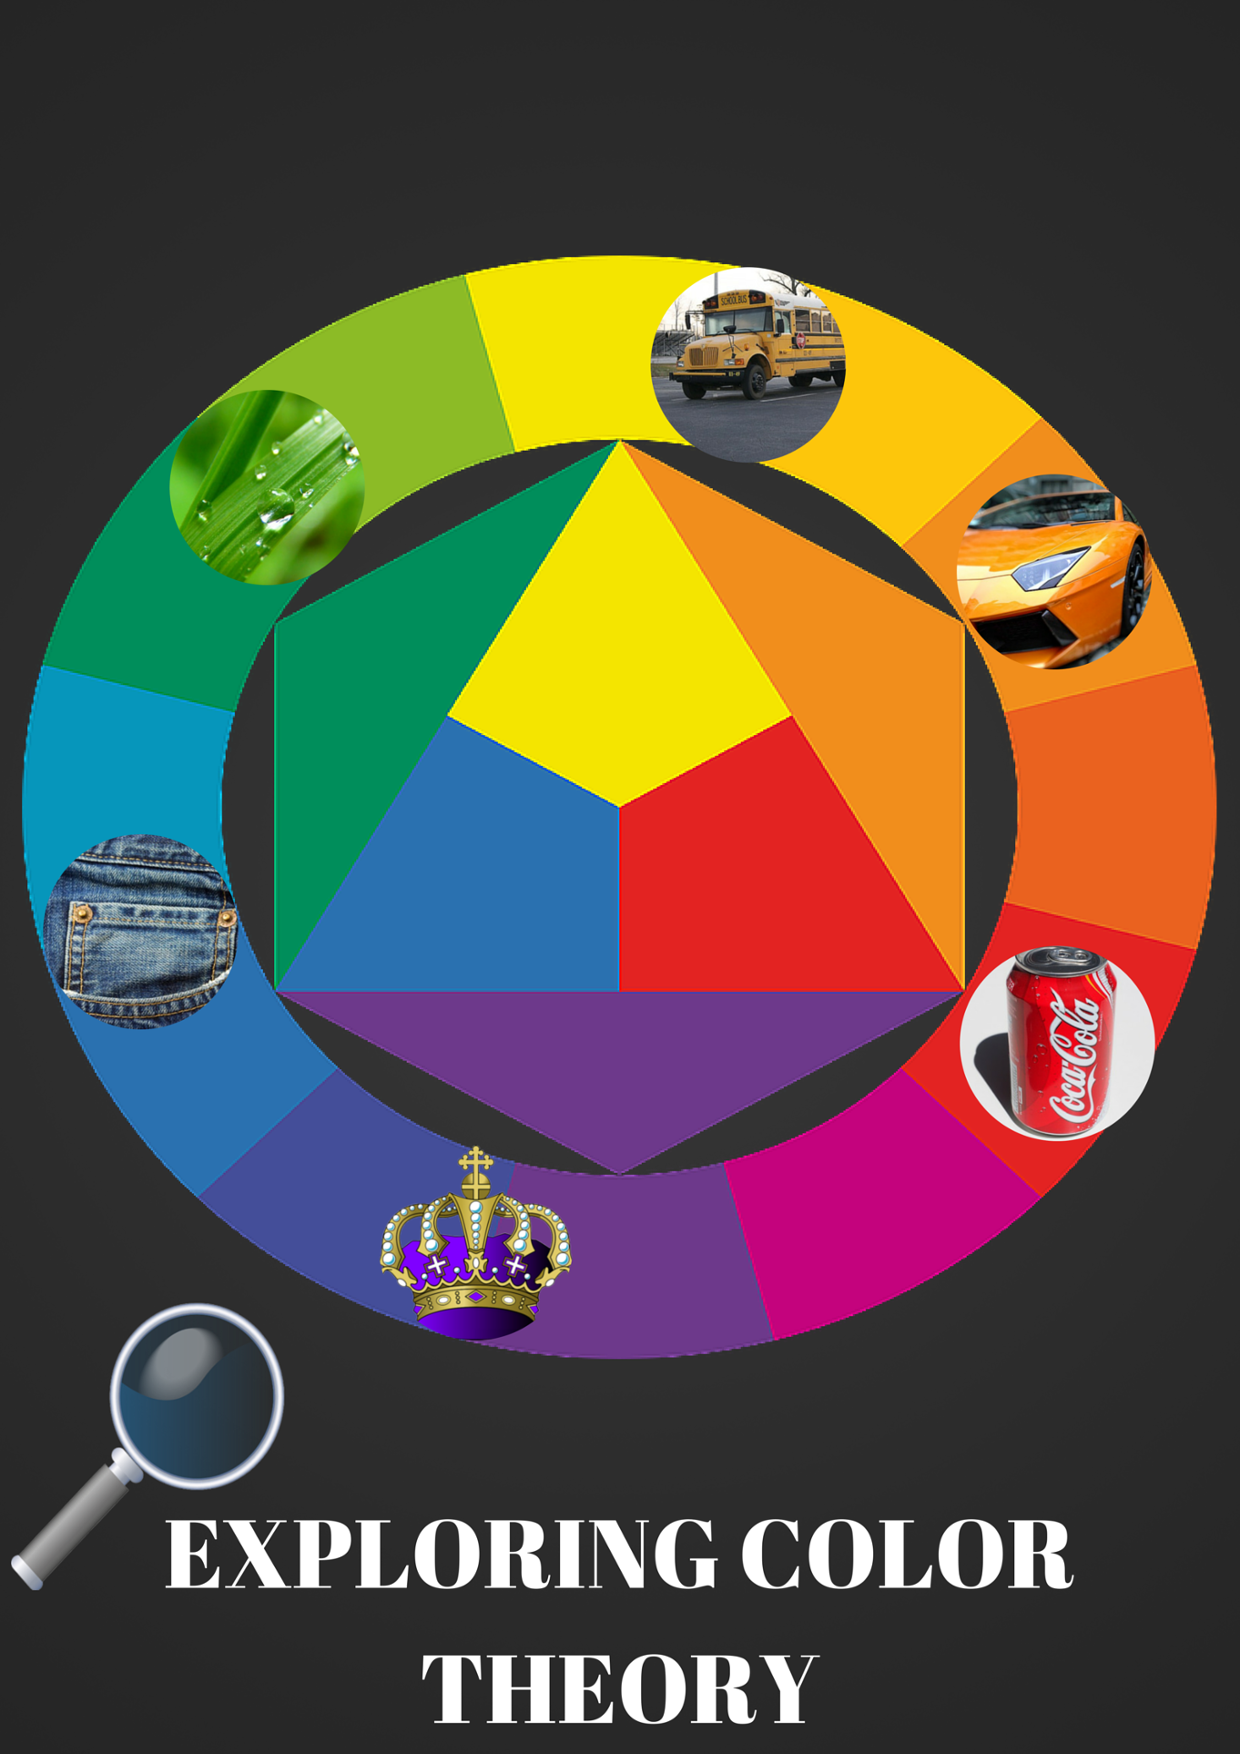 Exploring Color Theory